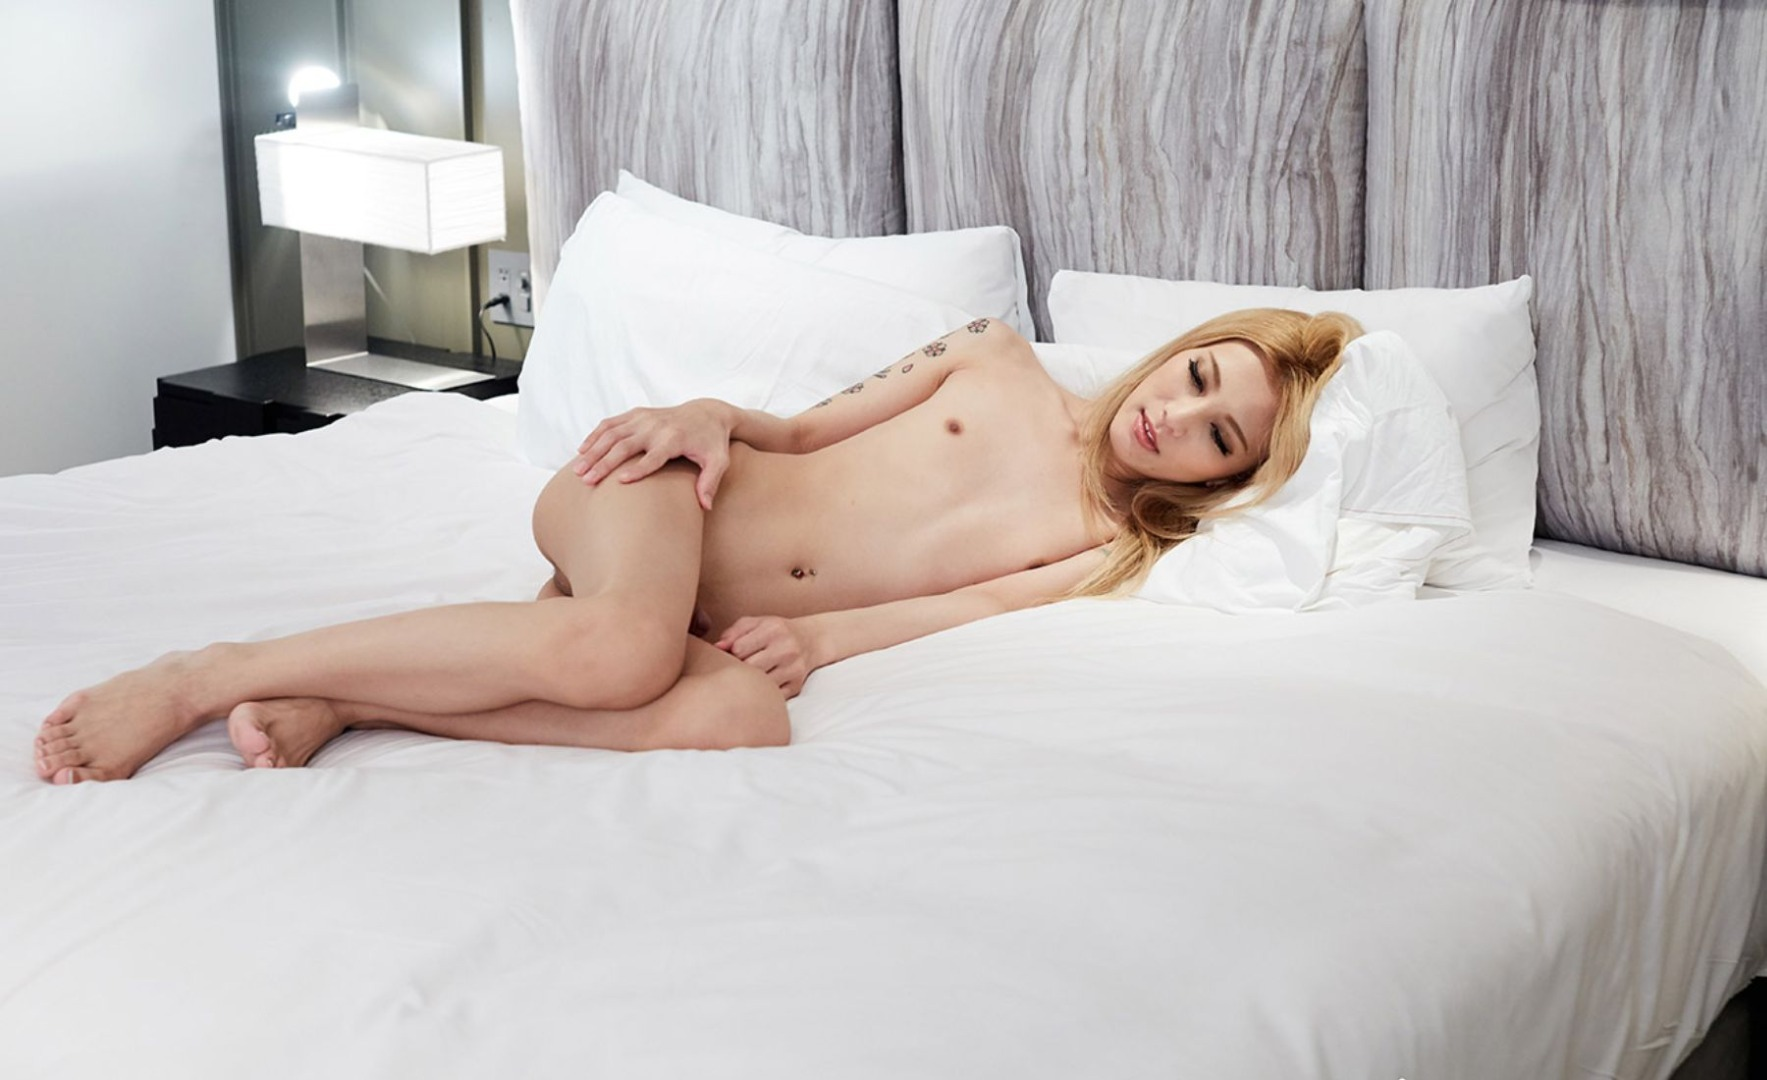 jenny star private porn video sexy blonde jenny in a red dress jpg